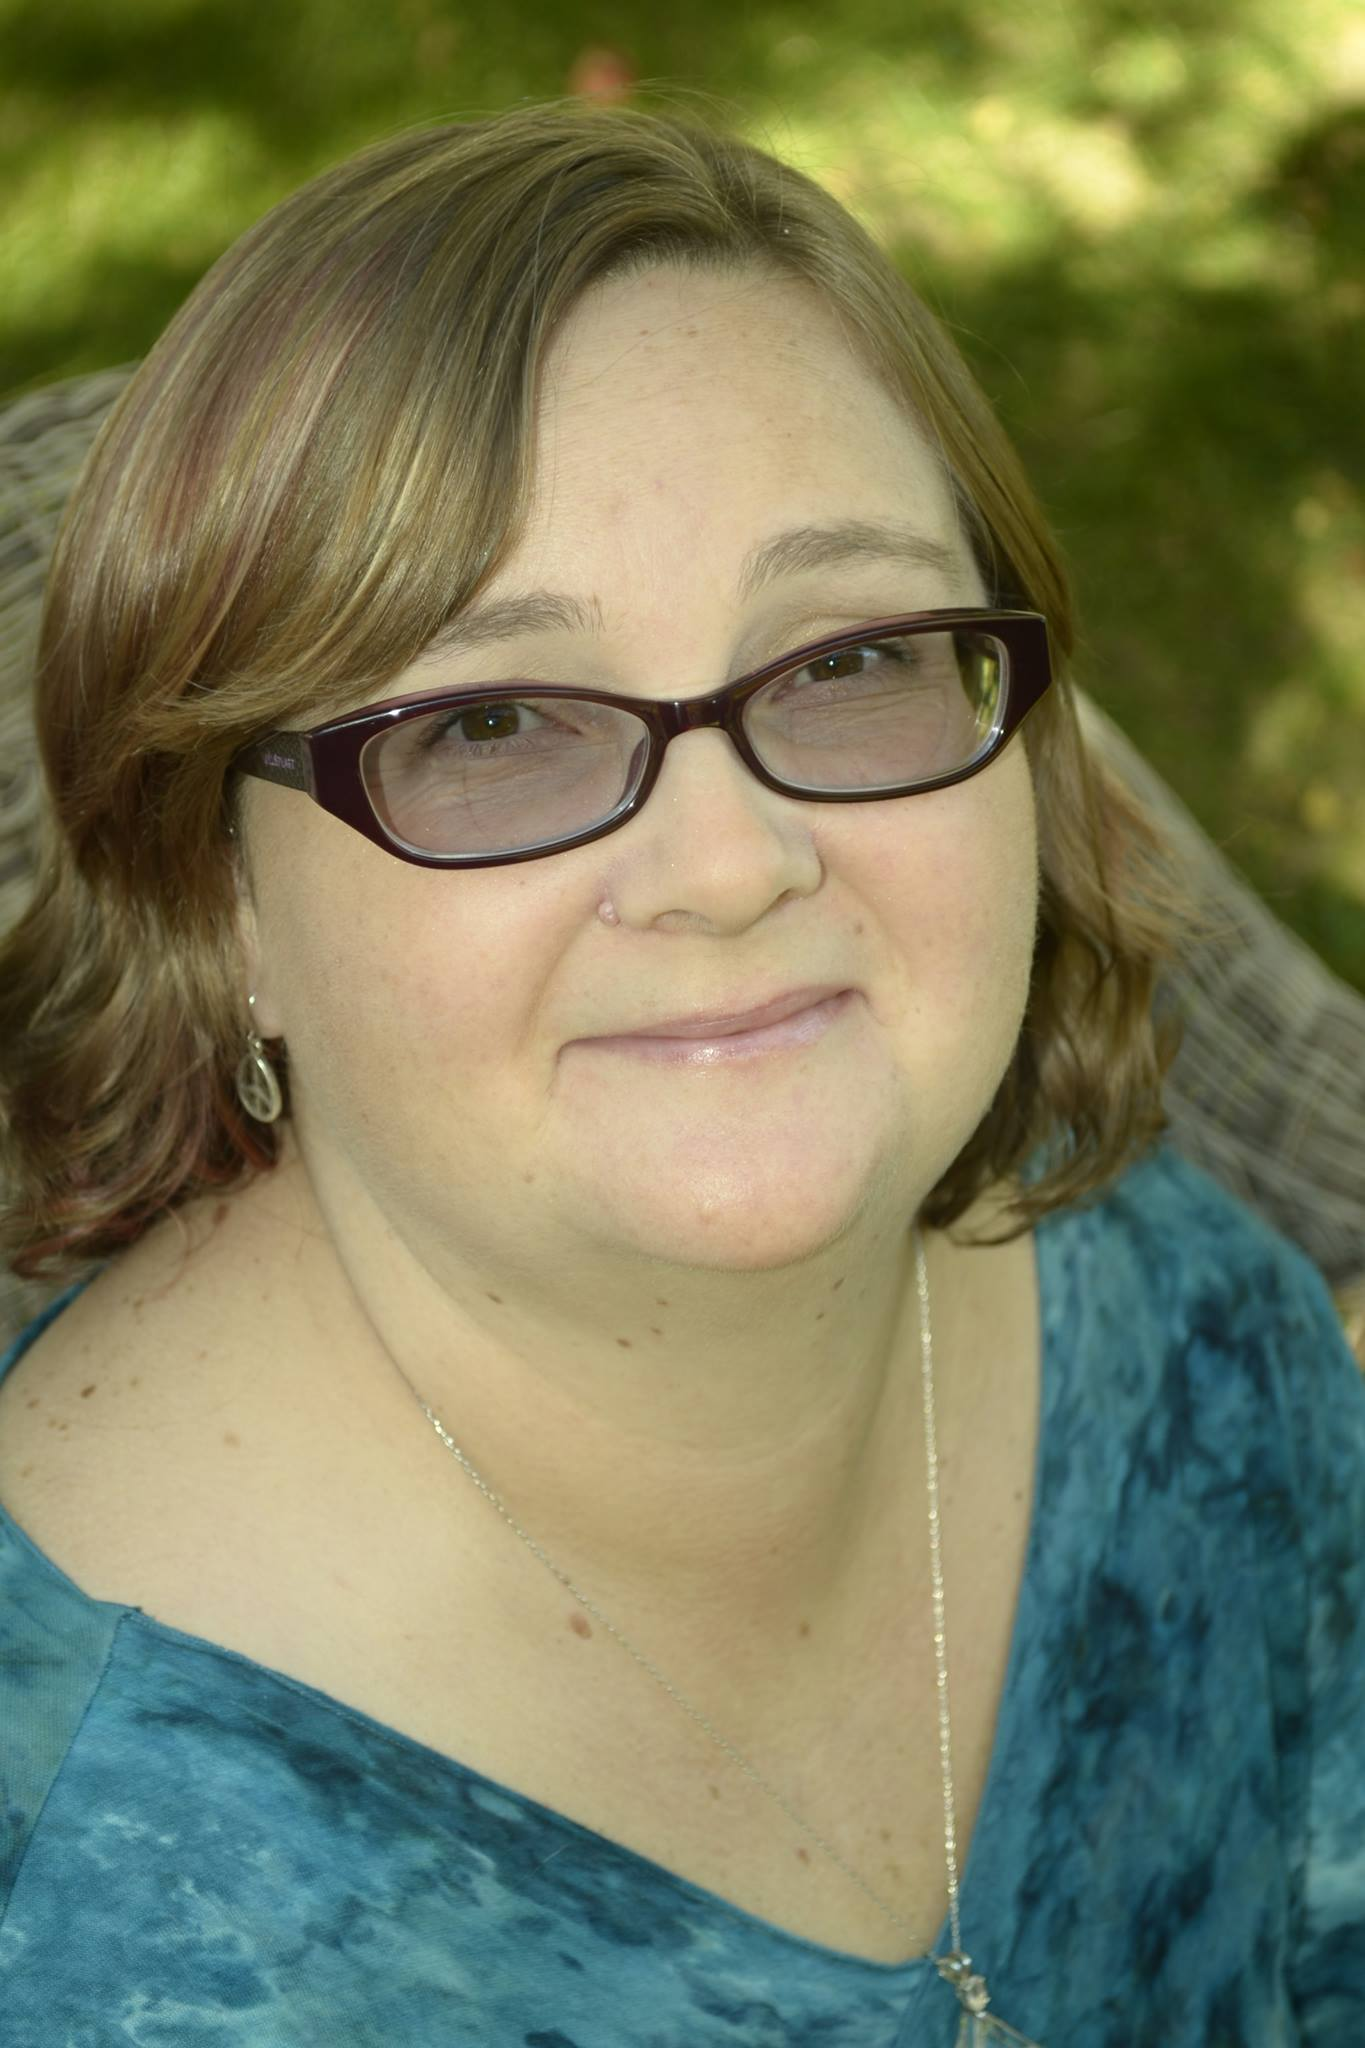 Kristi Brower is a Writer, Social Worker, Master Healer Radio Producer/Personality and Professional Psychic. She lives in Idaho with her wife, son, 2 dogs and 5 cats. Kristi loves to share her experiences and perspective with the world through the written and spoken word.  ~by: One of the 5 Kitties